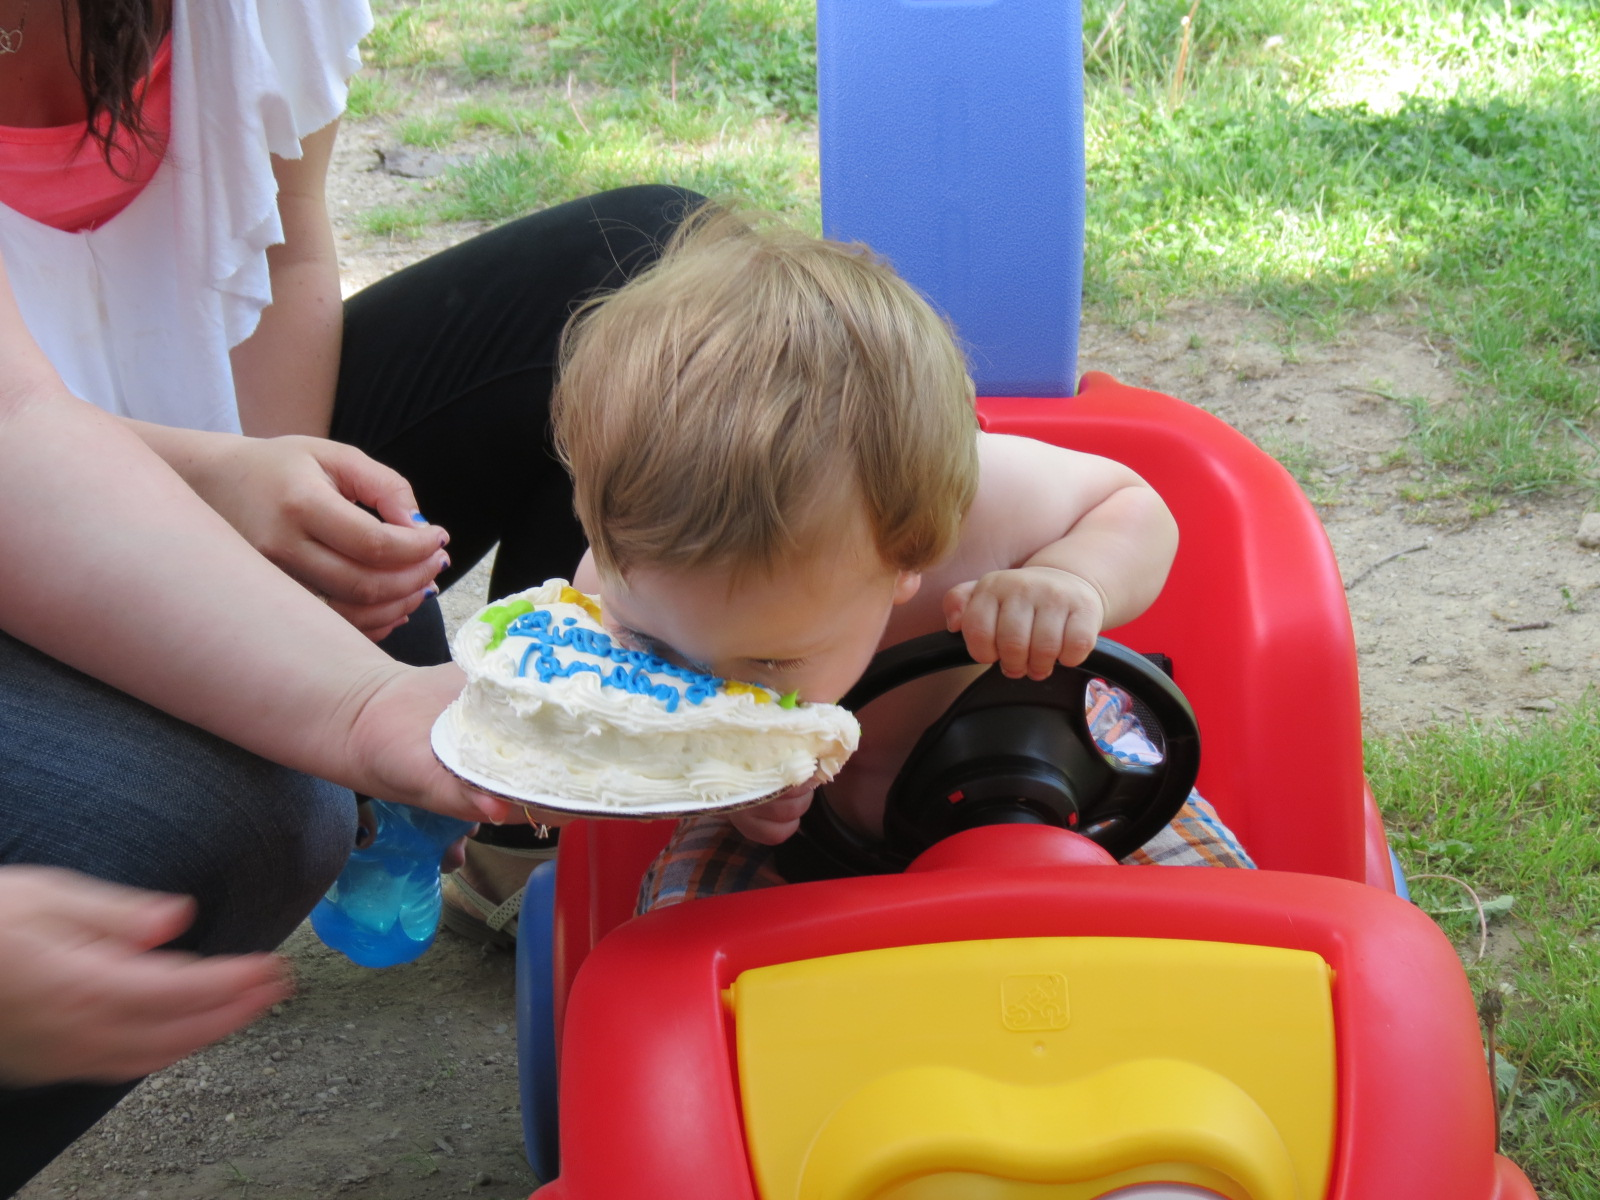 Unexpectedly, Camden decides to nose dive into his cake.